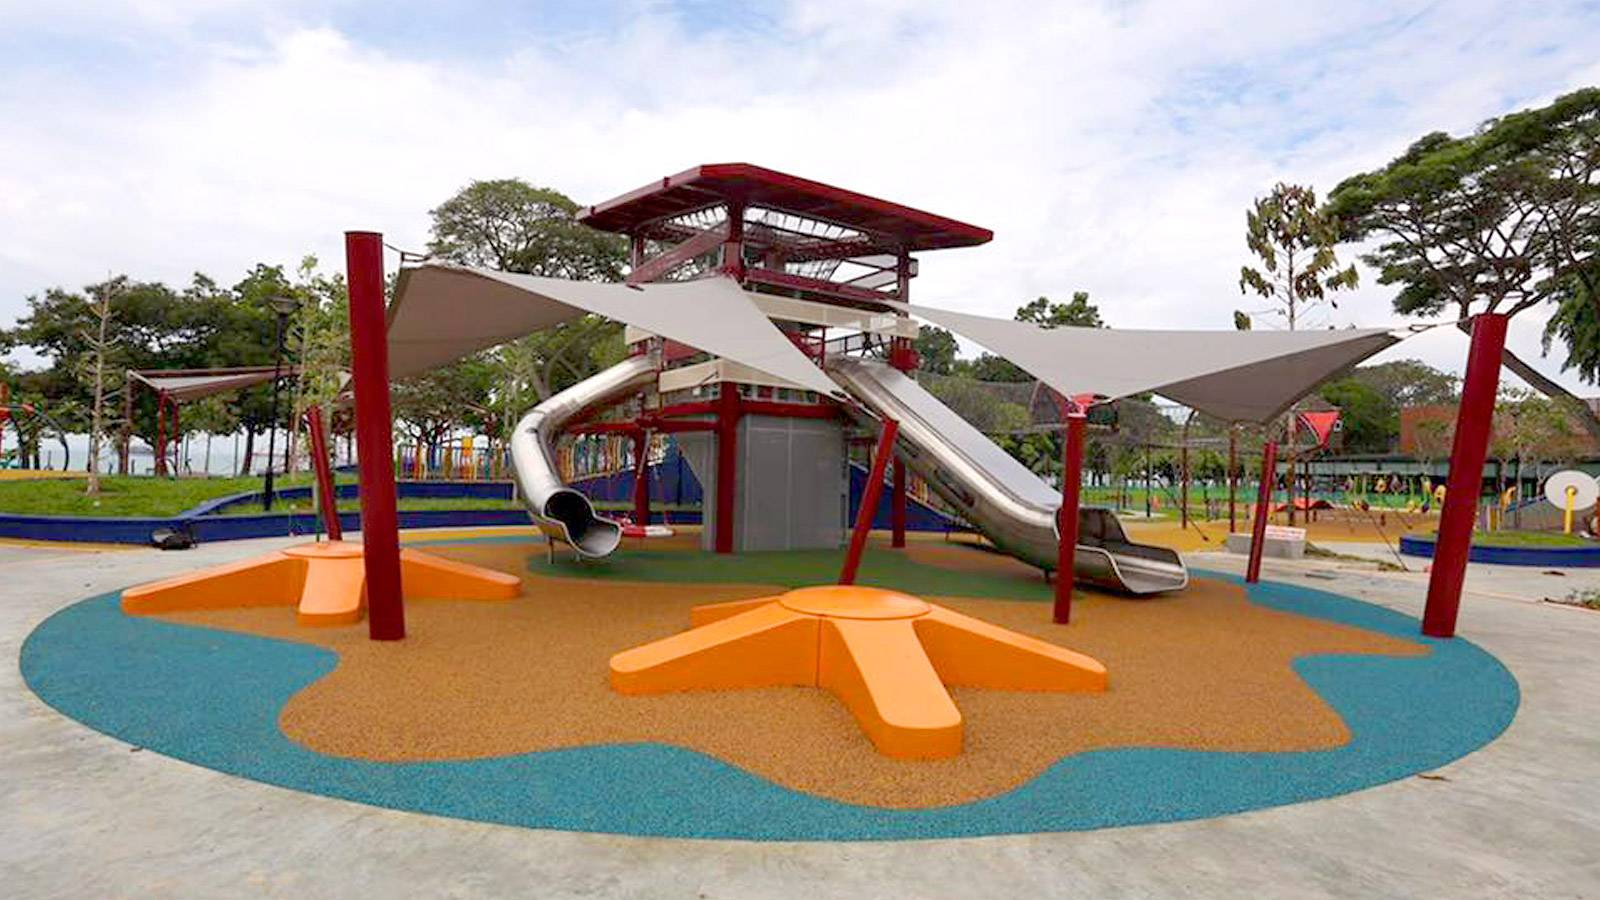 Tots-5-fab-and-free-playgrounds-junior-will-love-MARINE-COVE